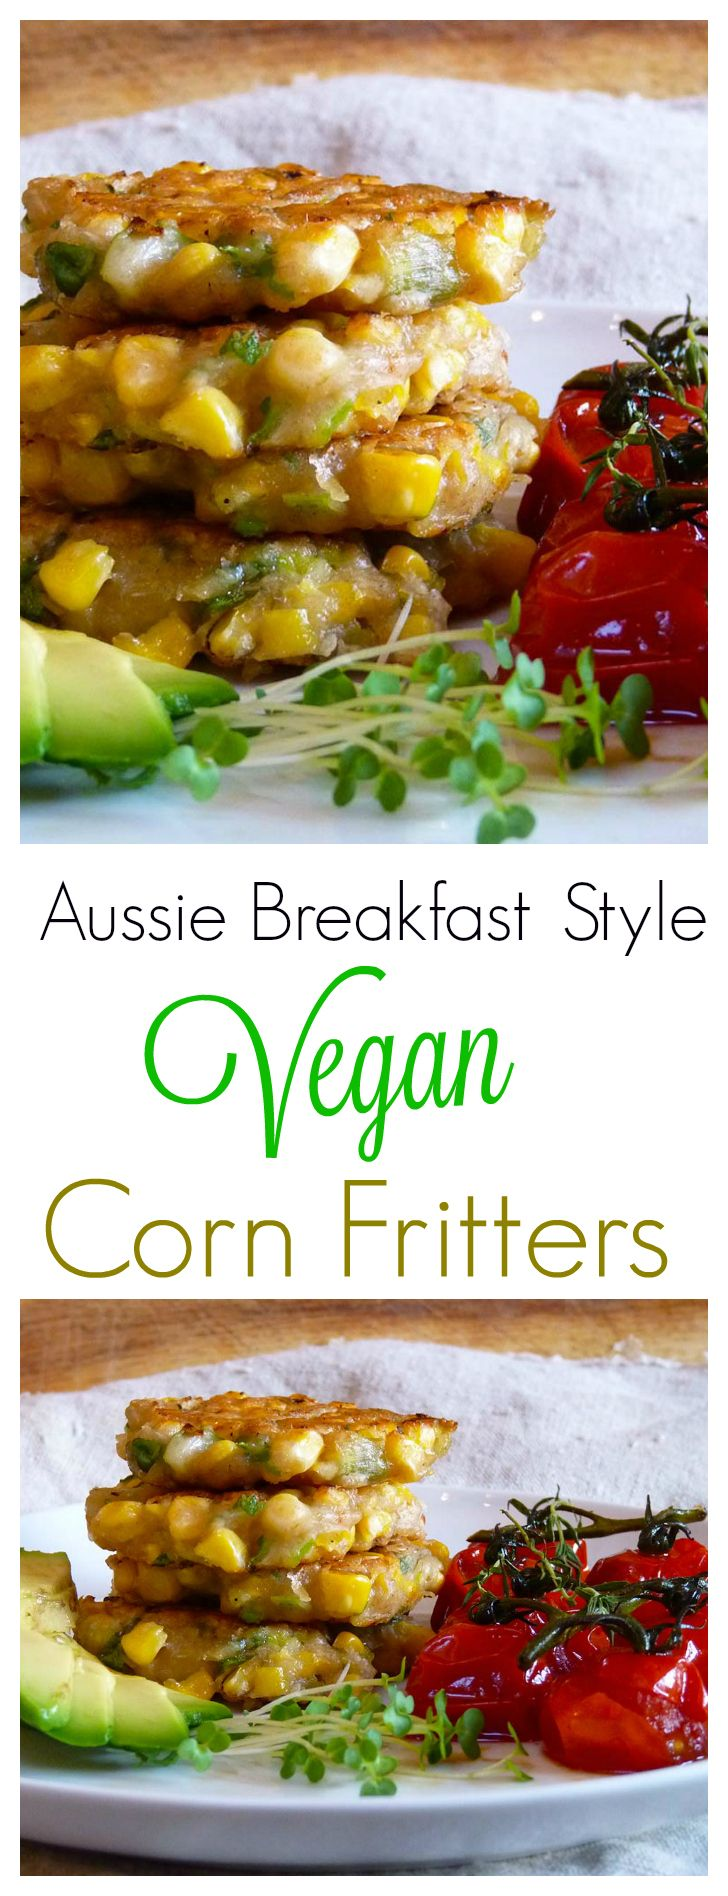 Vegan Aussie Breakfast Corn Fritters. Super yummy, perfect for breakfast or anytime, these sweet corn fritters will be loved by everyone in the family! #breakfast #vegan #cornfritters